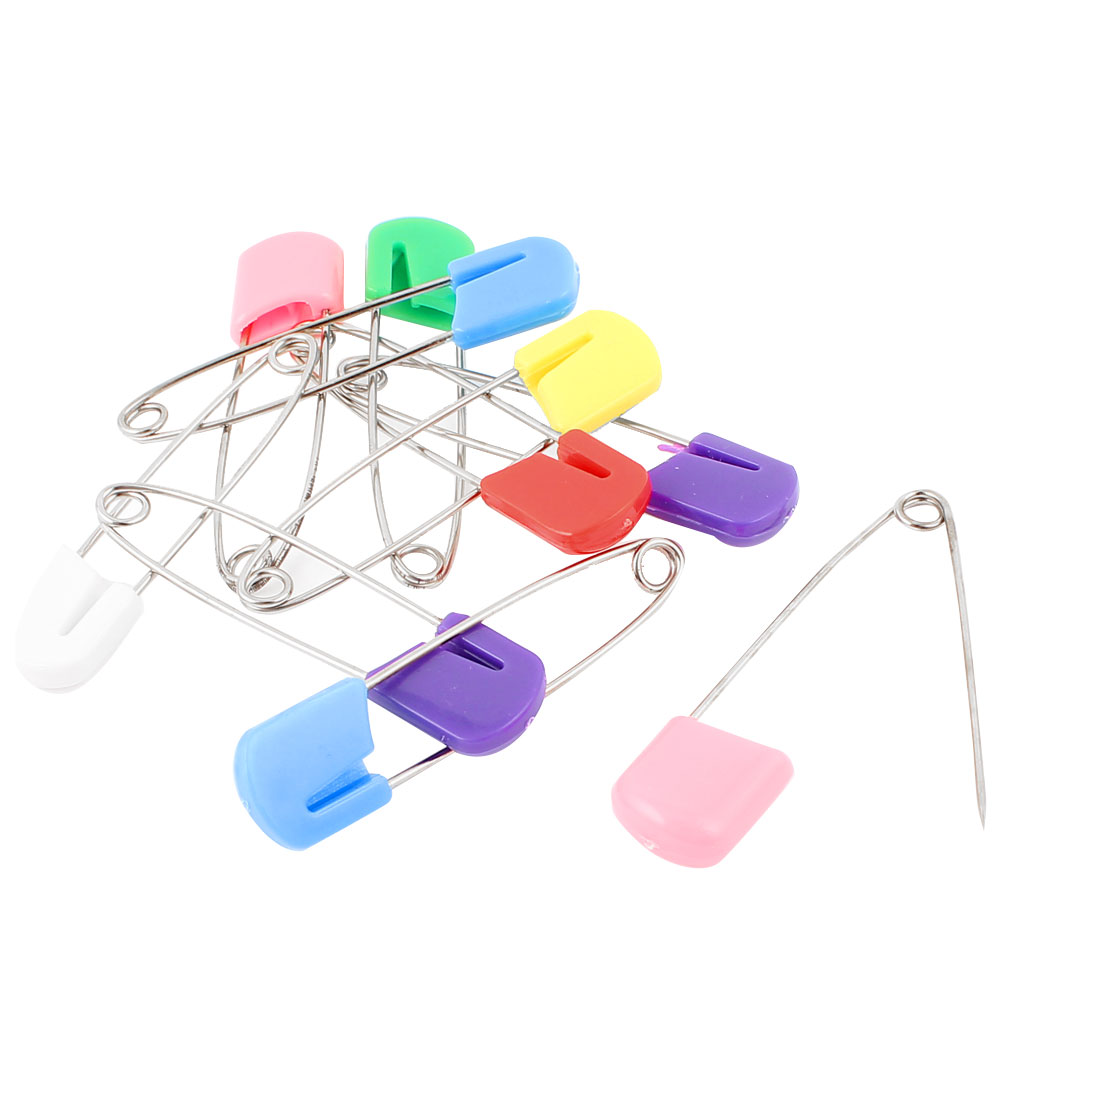 Metal Plastic Head Clothing Scarf Fastening Safety Pins Sewing Tool 10pcs